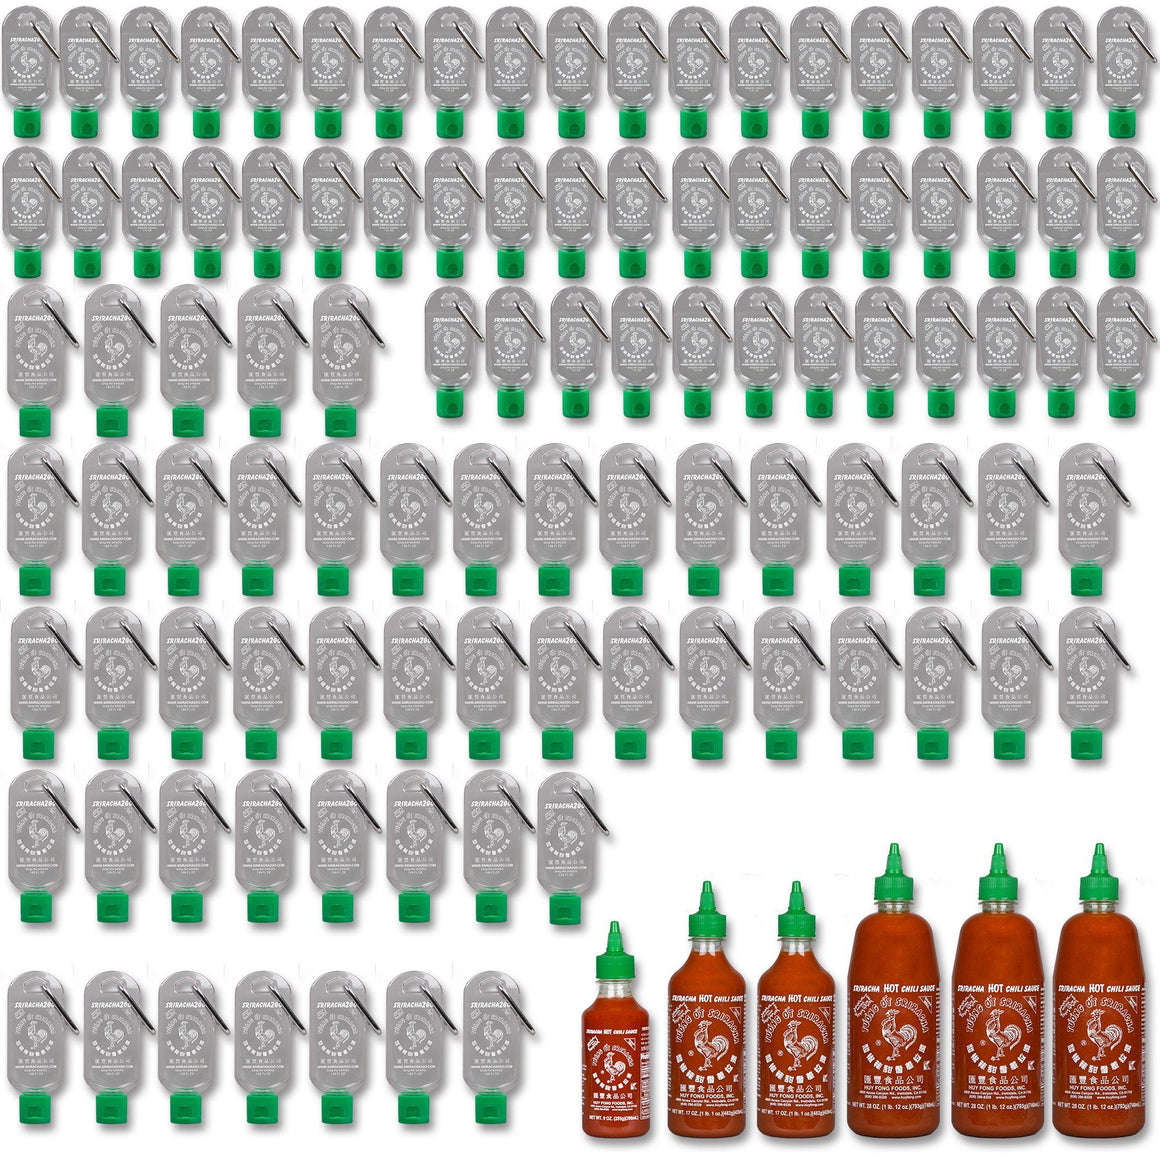 Bundles - Holy *#@%! That's Alotta Sriracha!